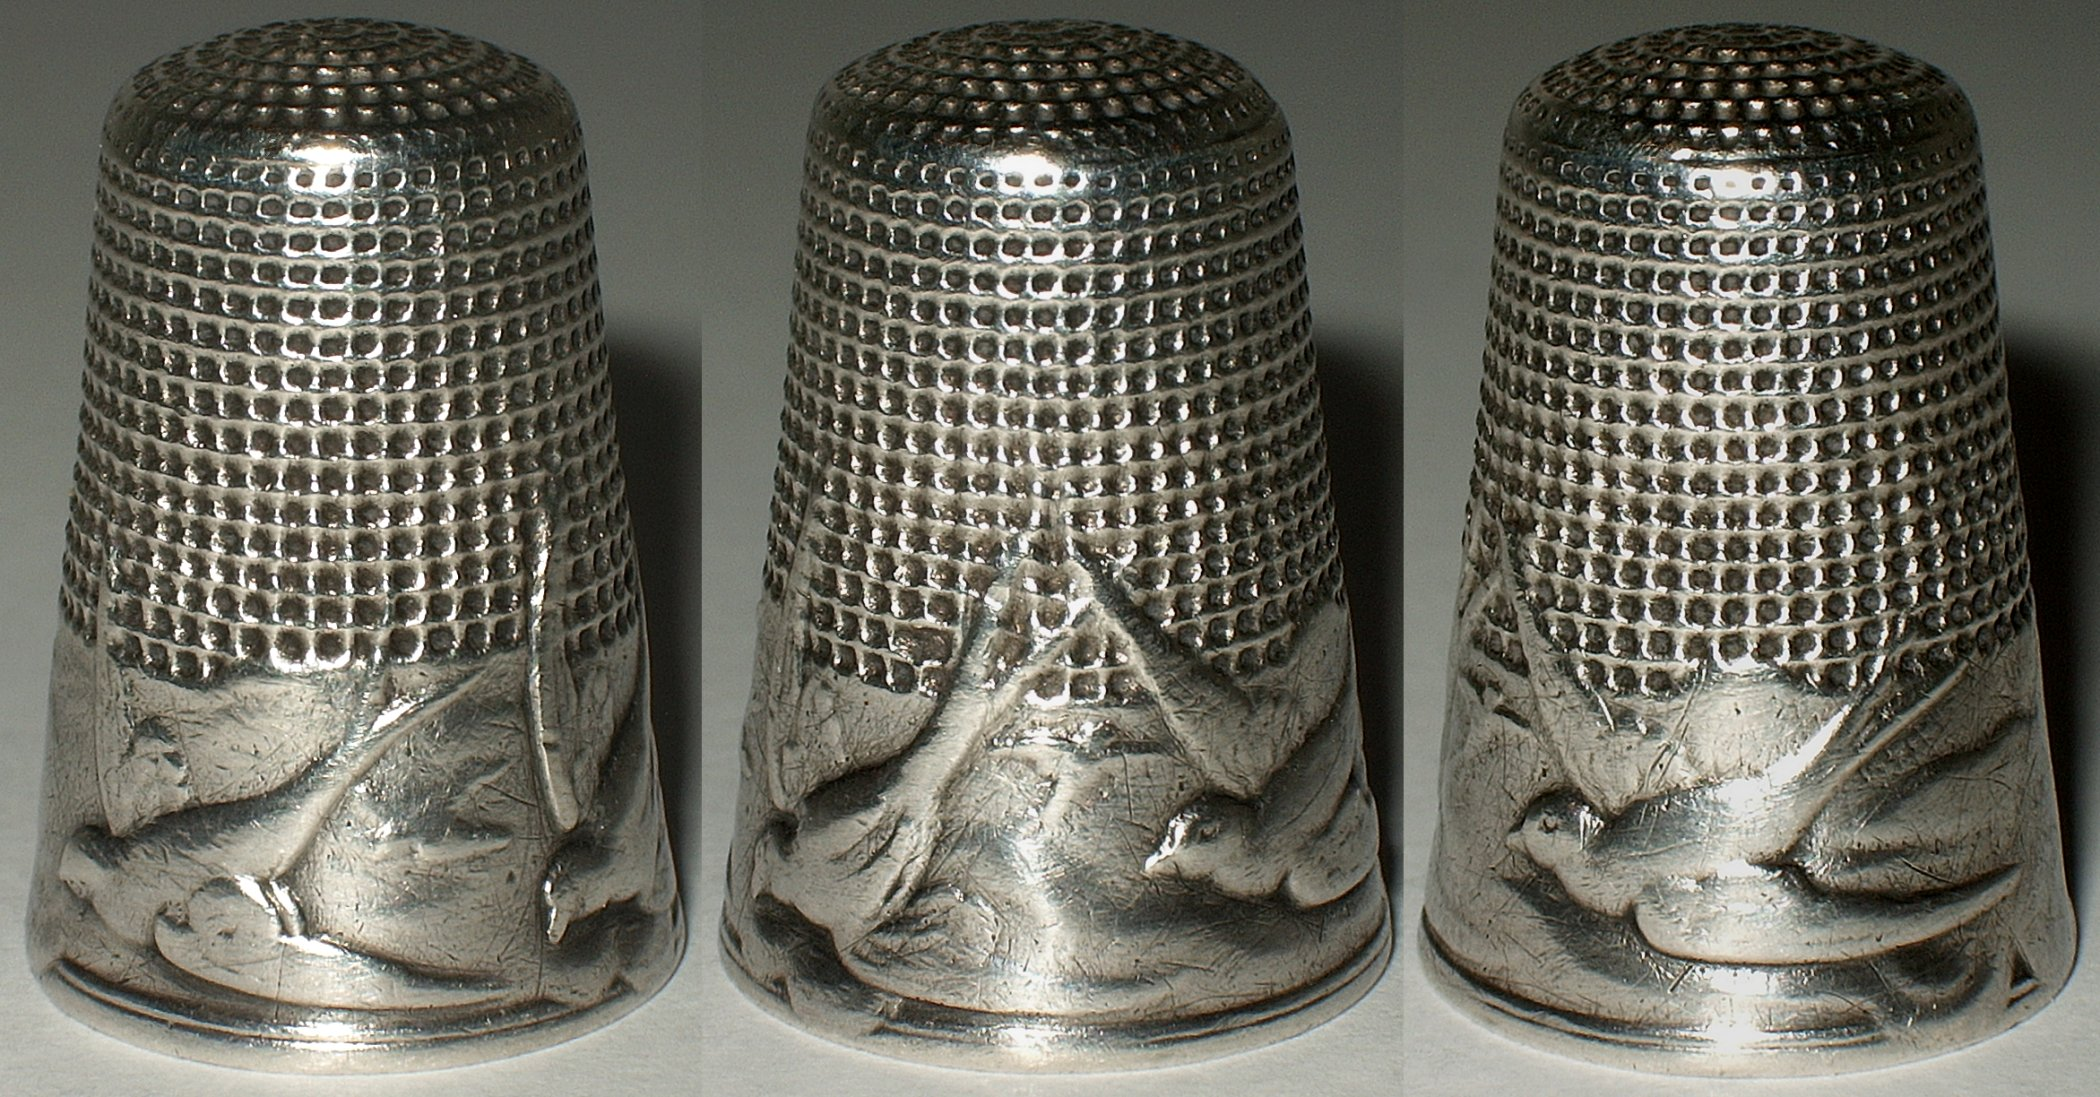 how to clean antique silver thimble